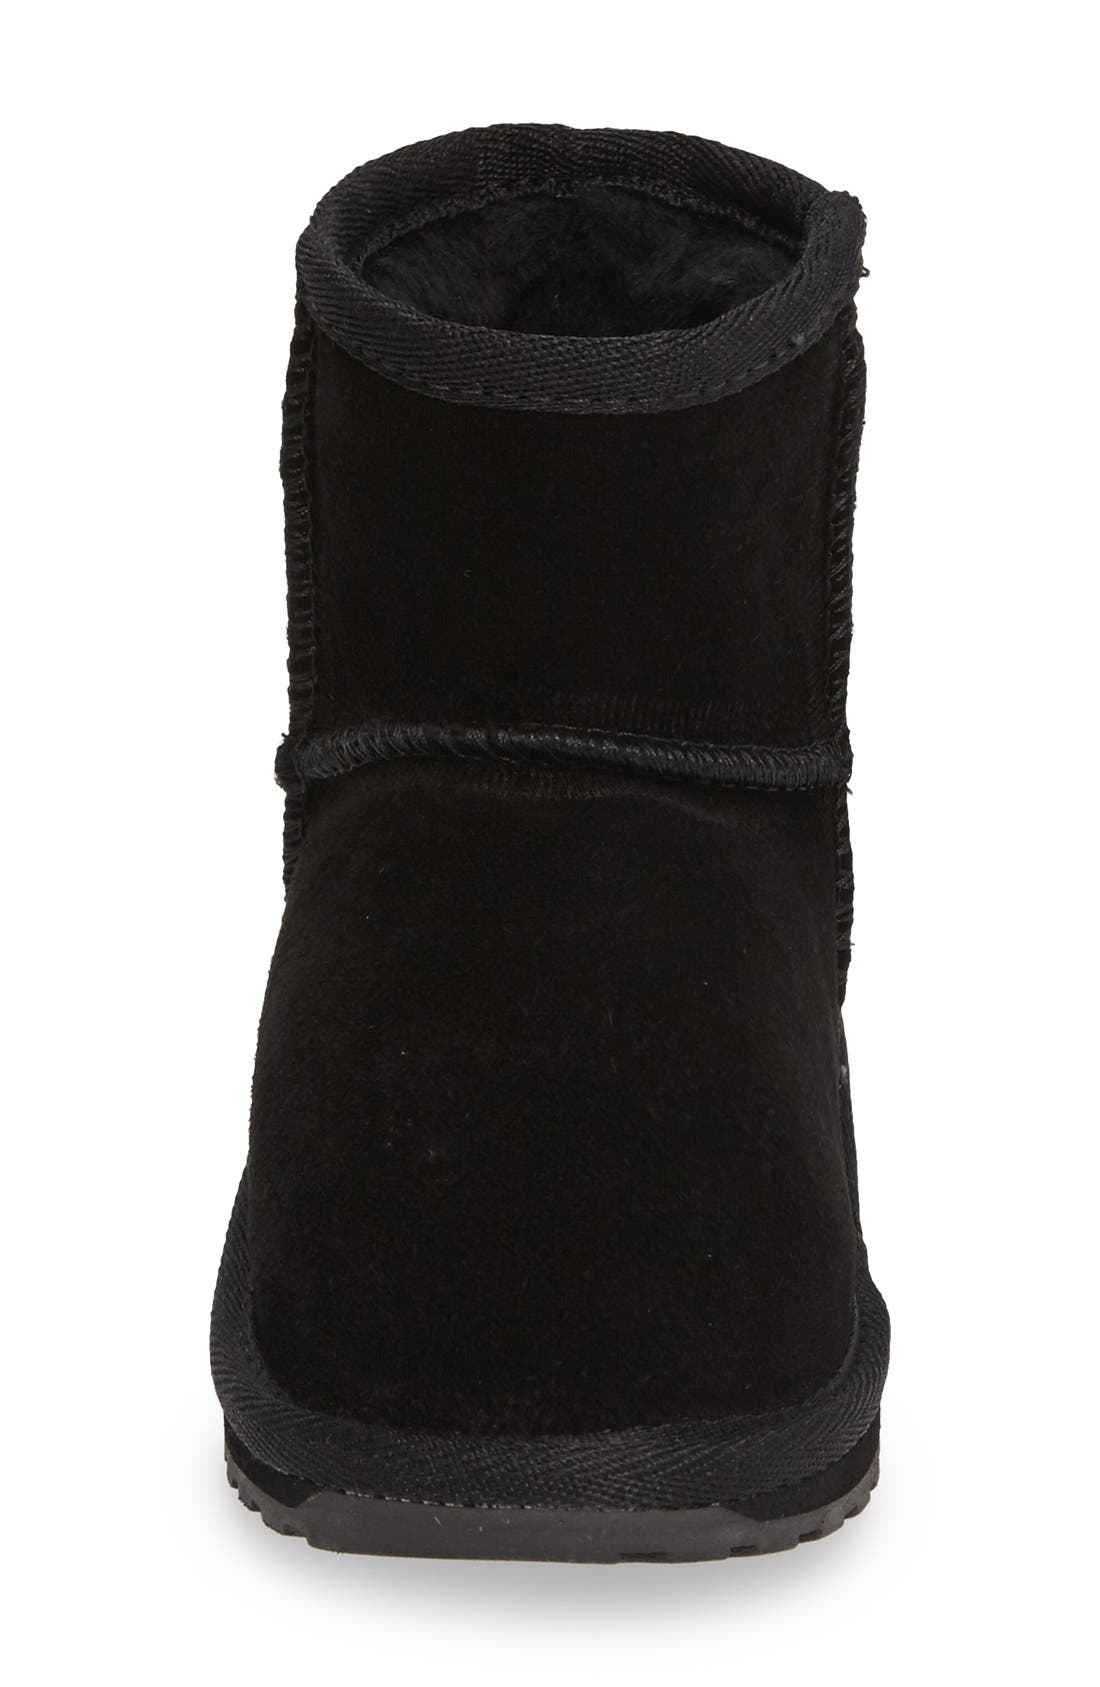 Wallaby Boot,                             Alternate thumbnail 3, color,                             Black